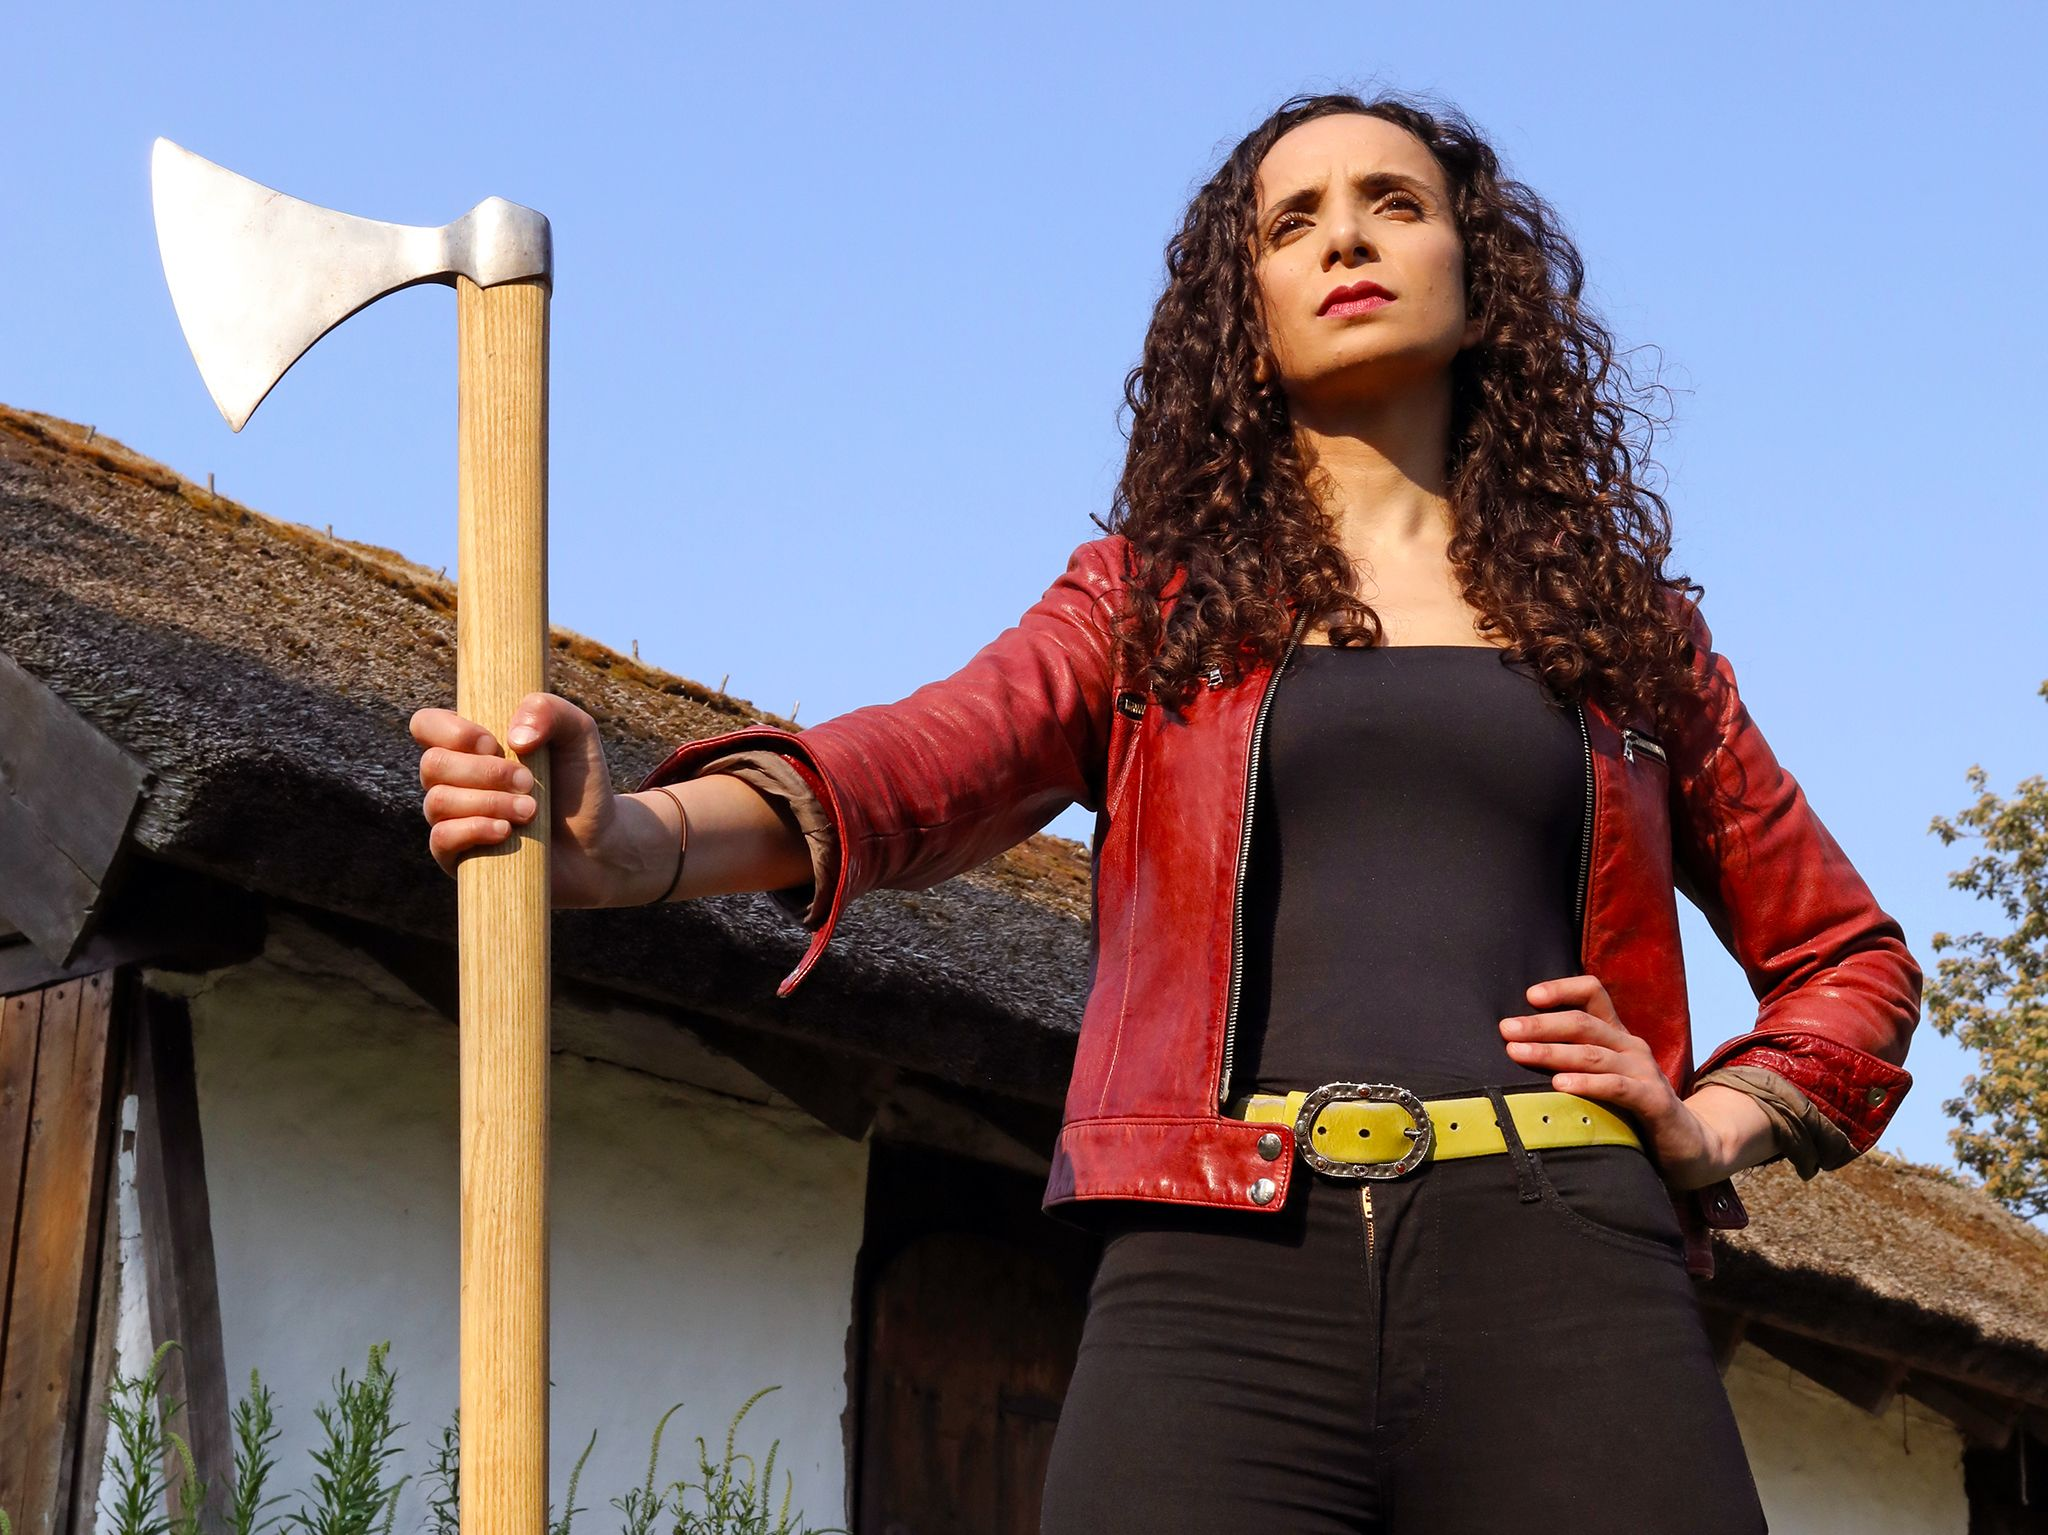 Ella at Trelleborg Fortress, Denmark holding Viking axe. This image is from Viking Warrior Queens. [Photo of the day - October 2019]